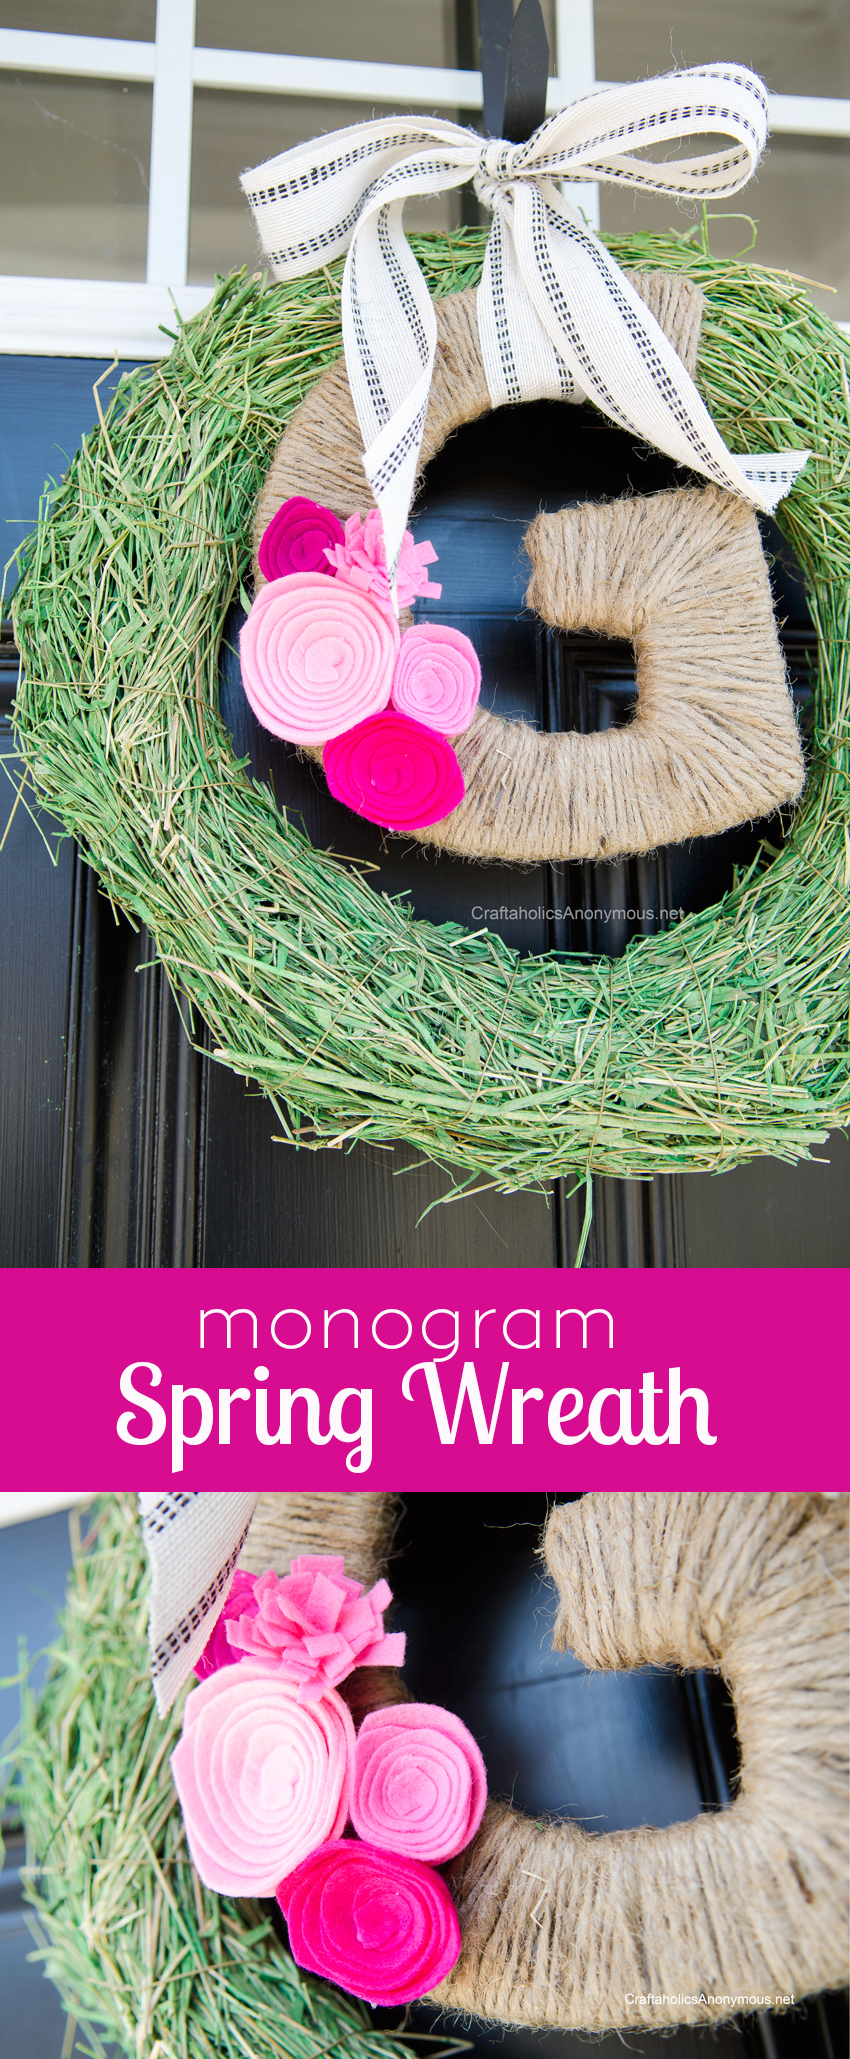 DIY  Monogram Spring Wreath + ideas for other spring wreaths that can be made in minutes!